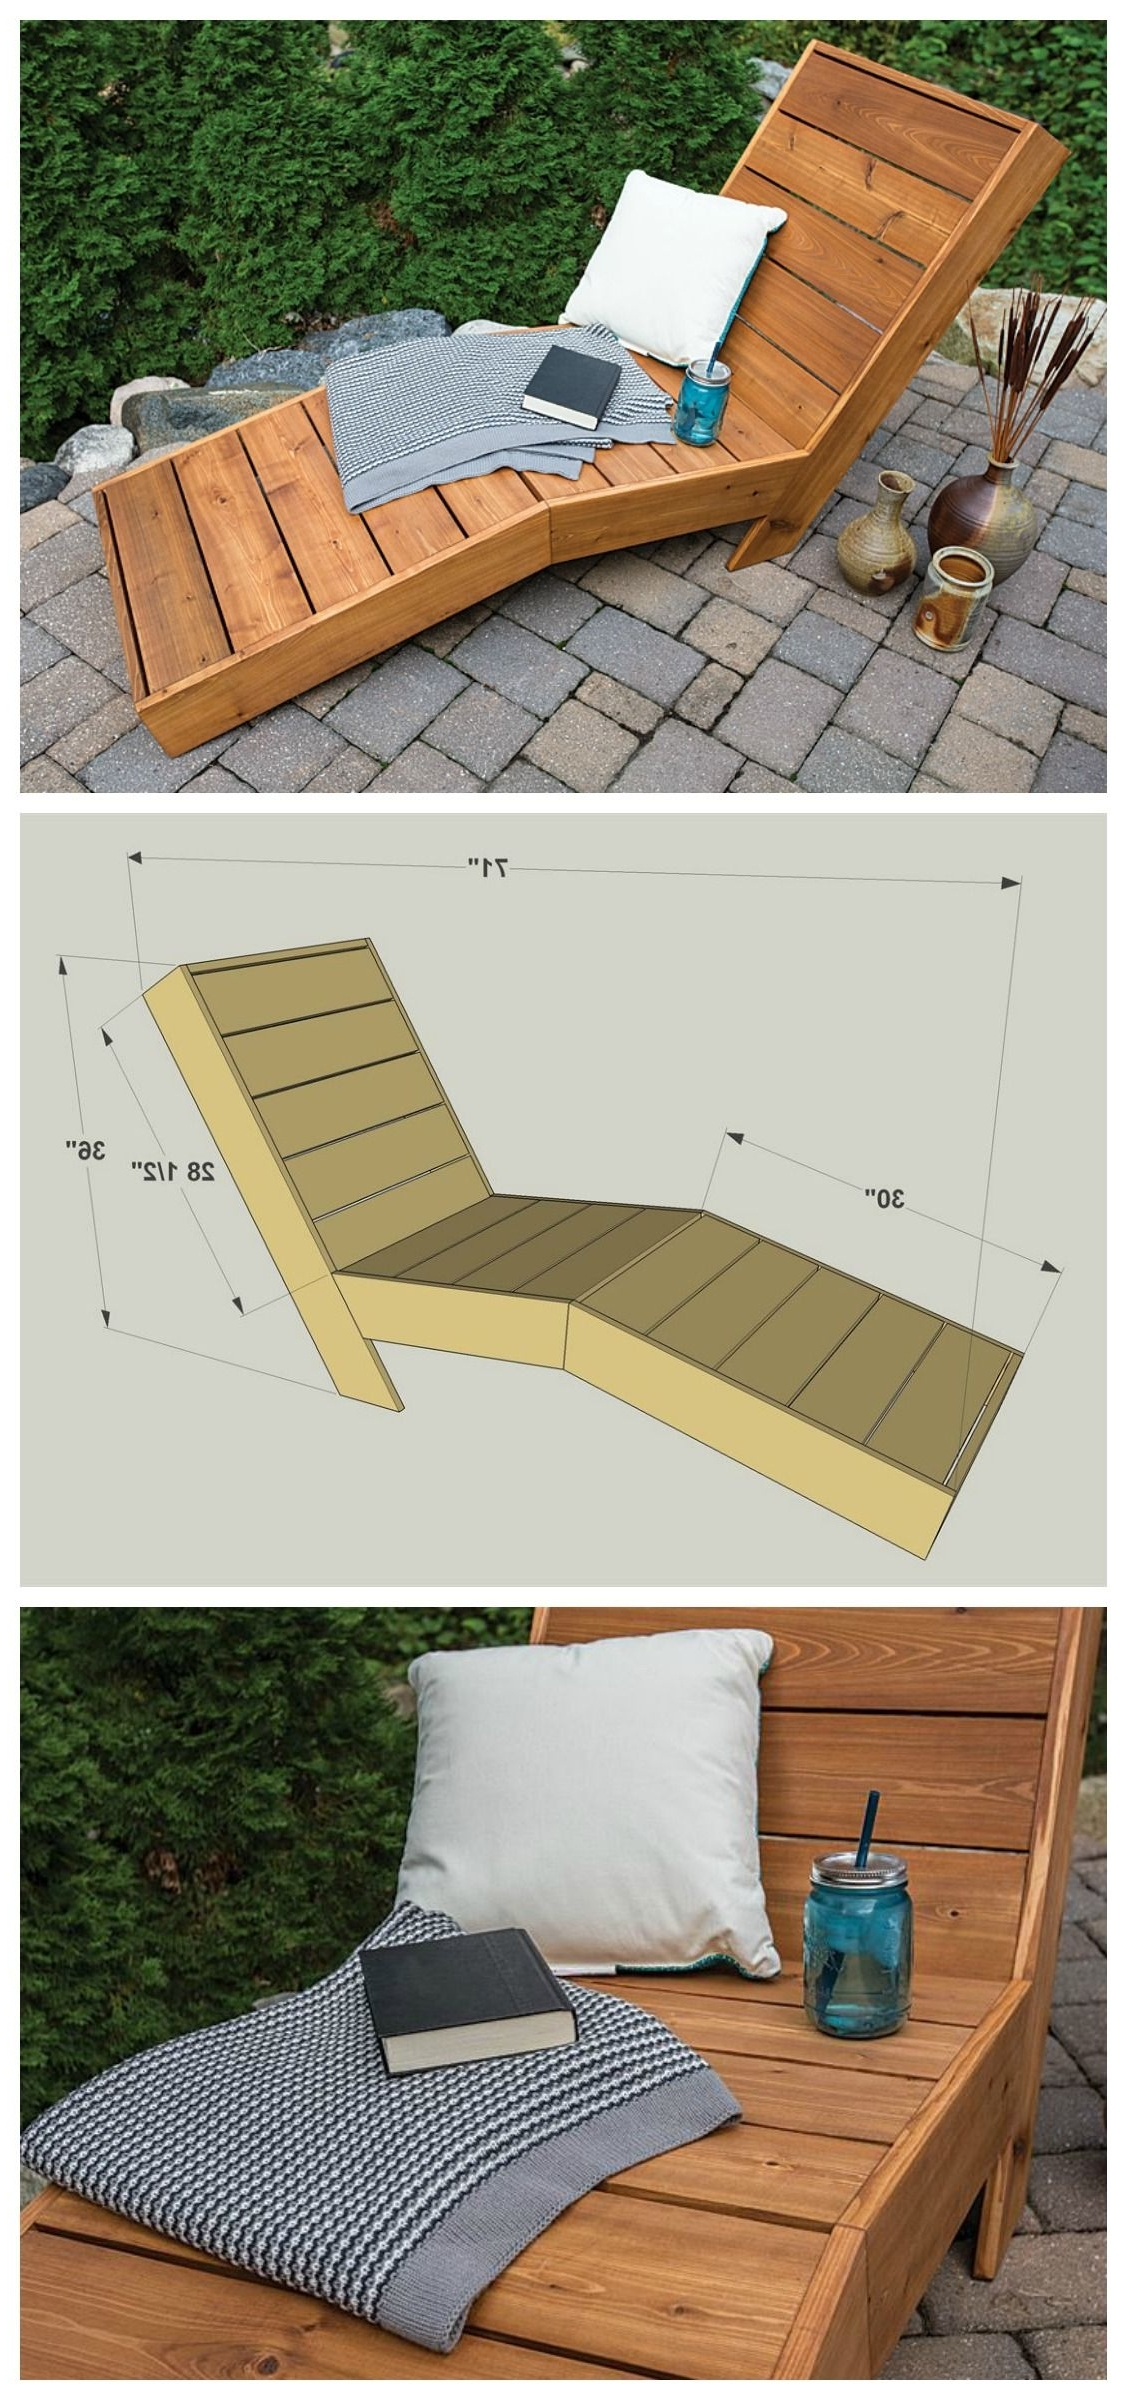 Diy Chaise Lounges Inside Newest Diy Outdoor Chaise Lounge :: Free Plans At Buildsomething (View 11 of 15)